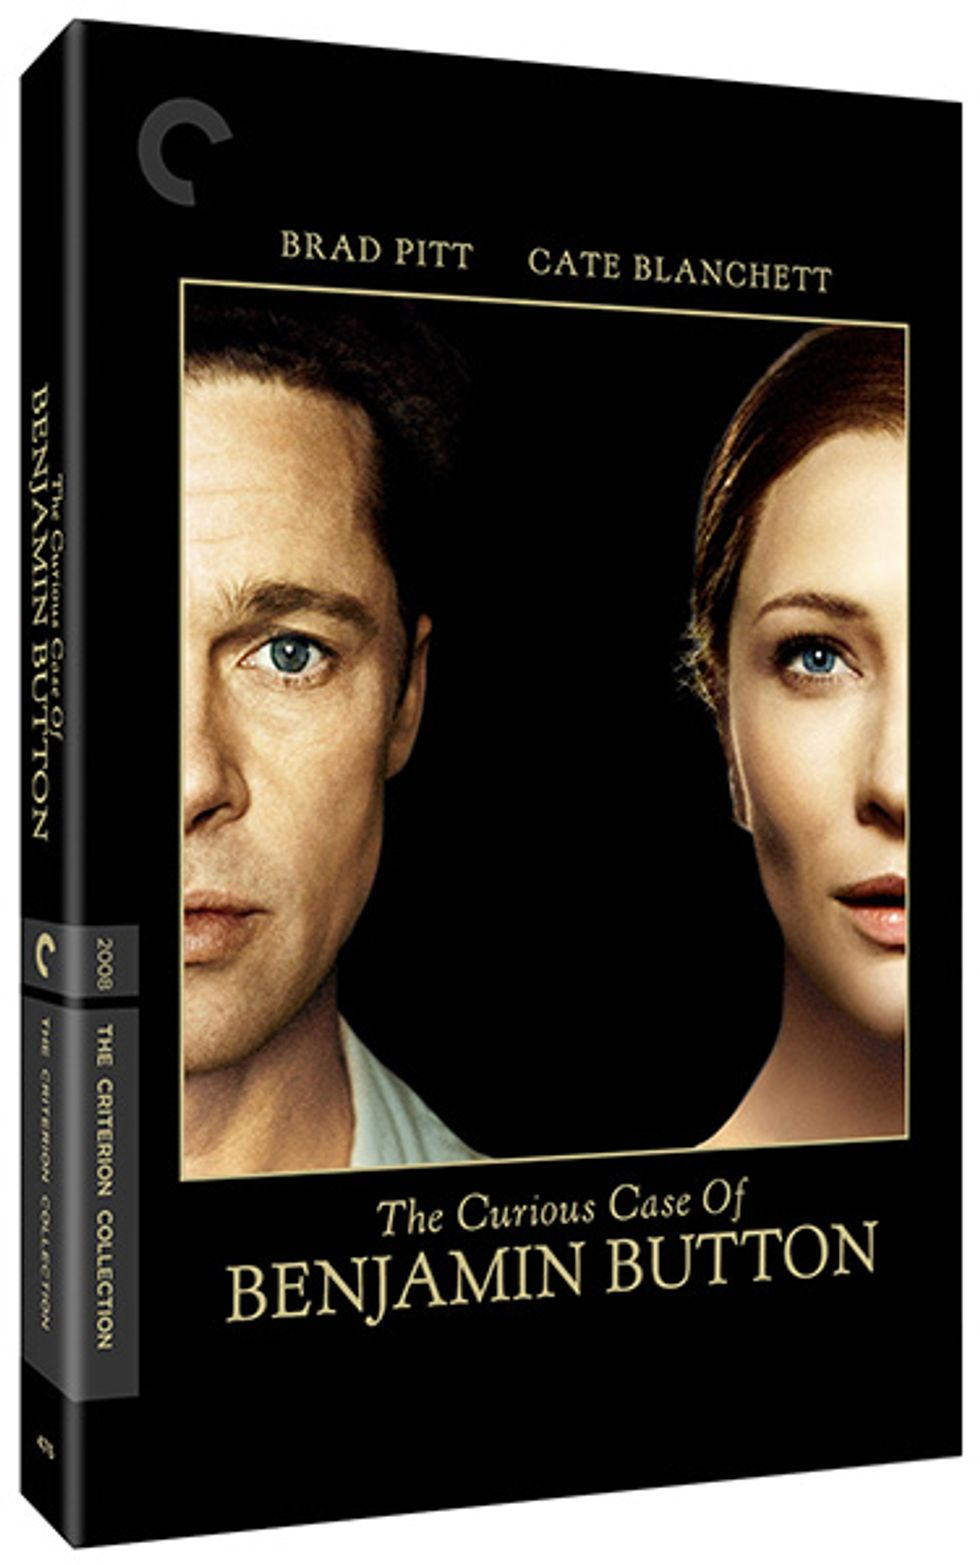 The Curious Case Of Benjamin Button On Criterion DVD!